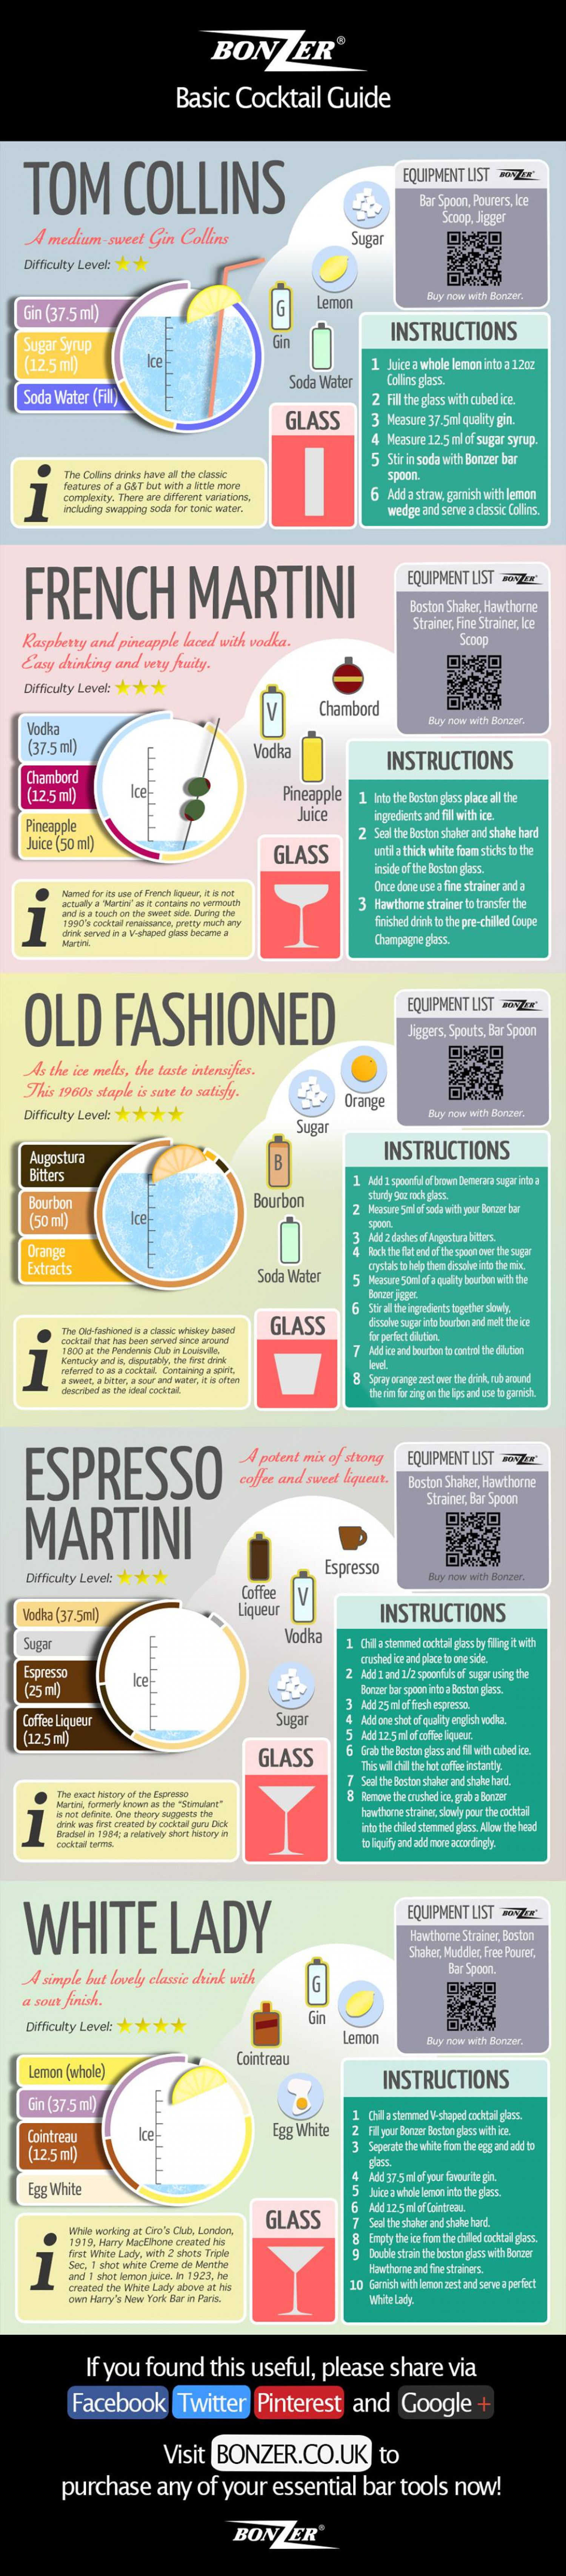 Basic Cocktail Guide Infographic